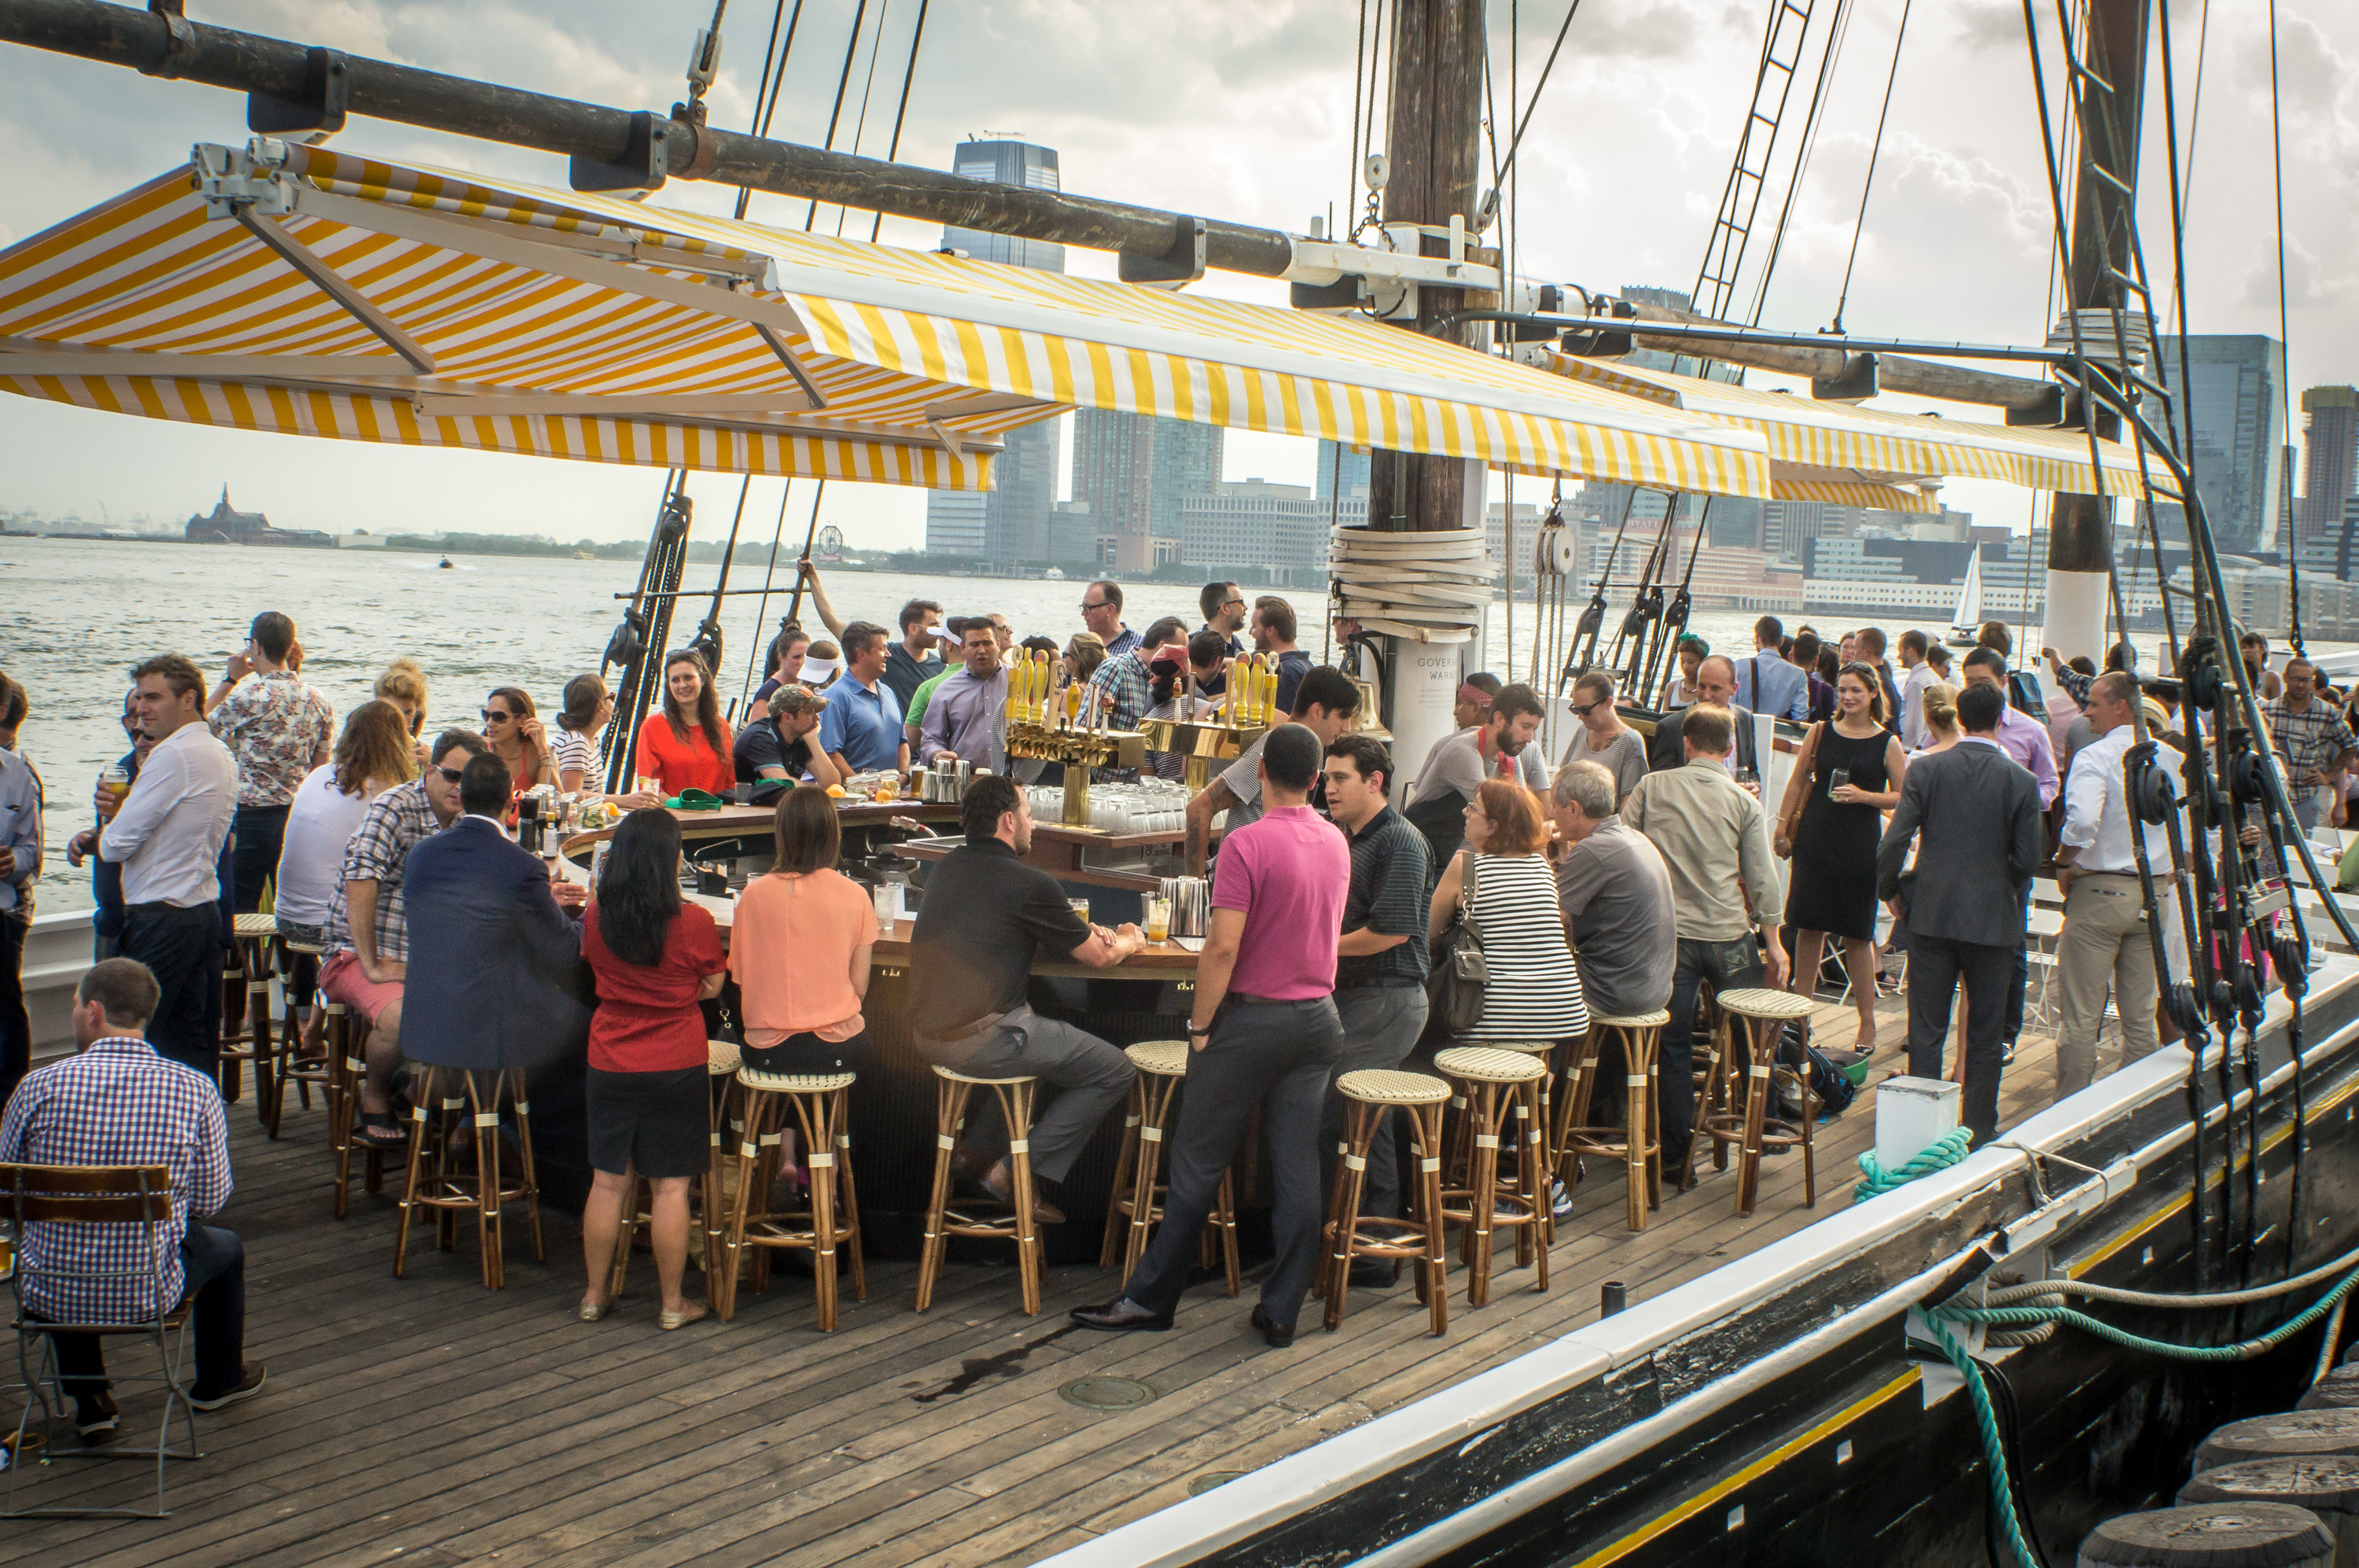 Best Boat Bars In NYC For Drinking On The Water